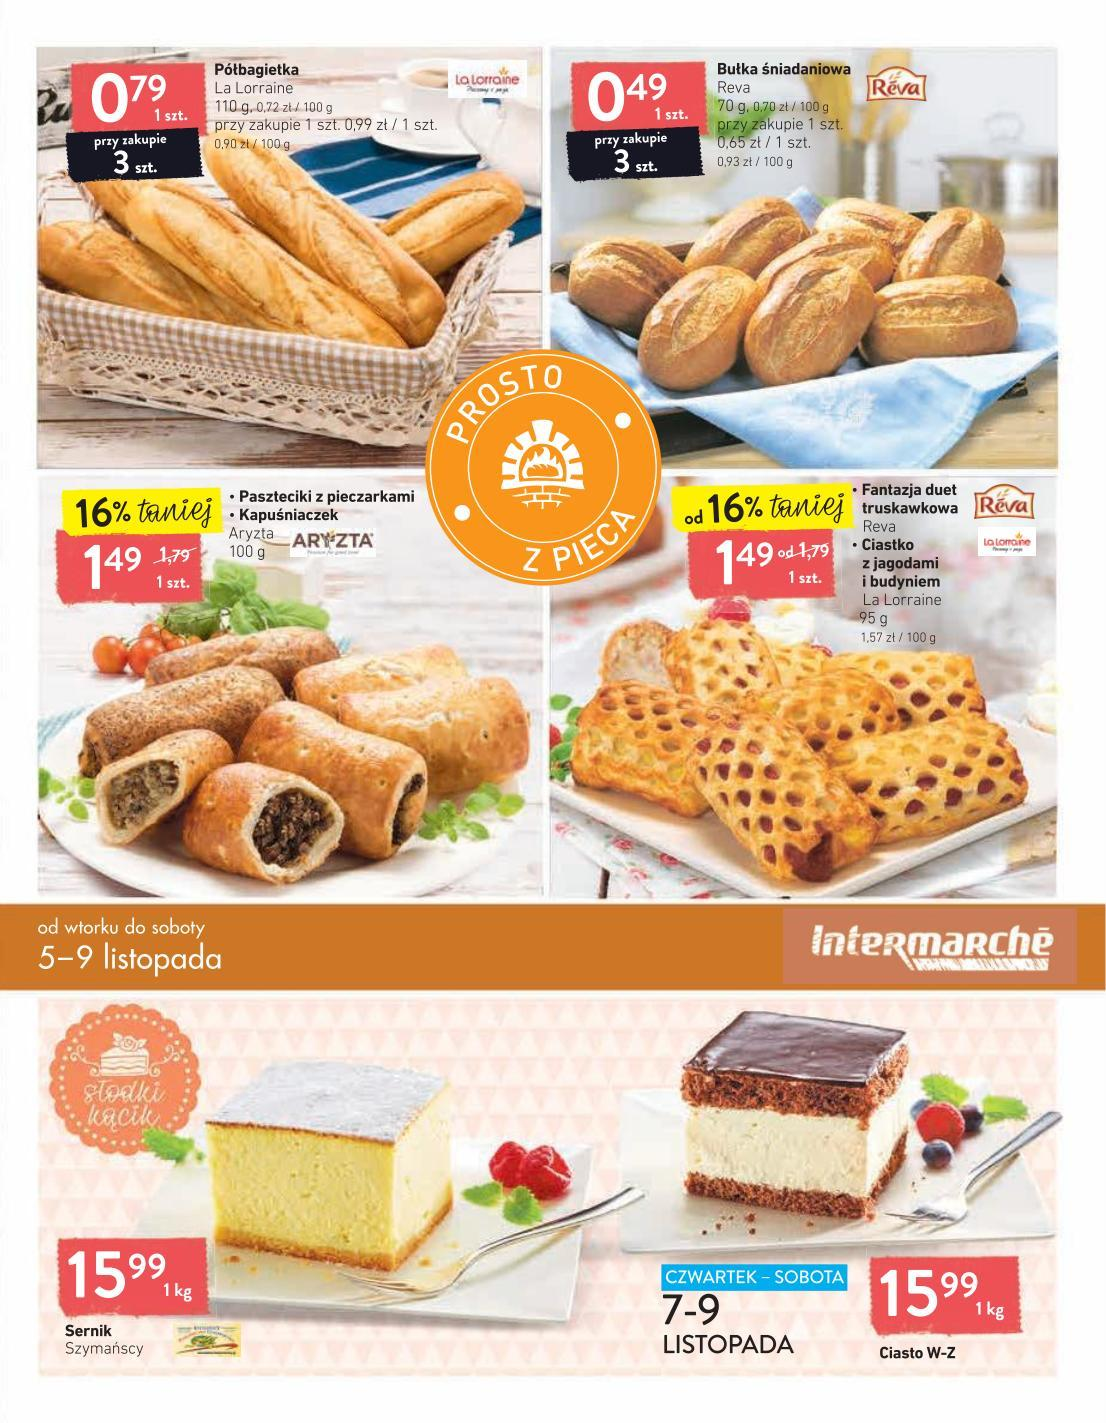 Gazetka promocyjna Intermarche do 09/11/2019 str.10